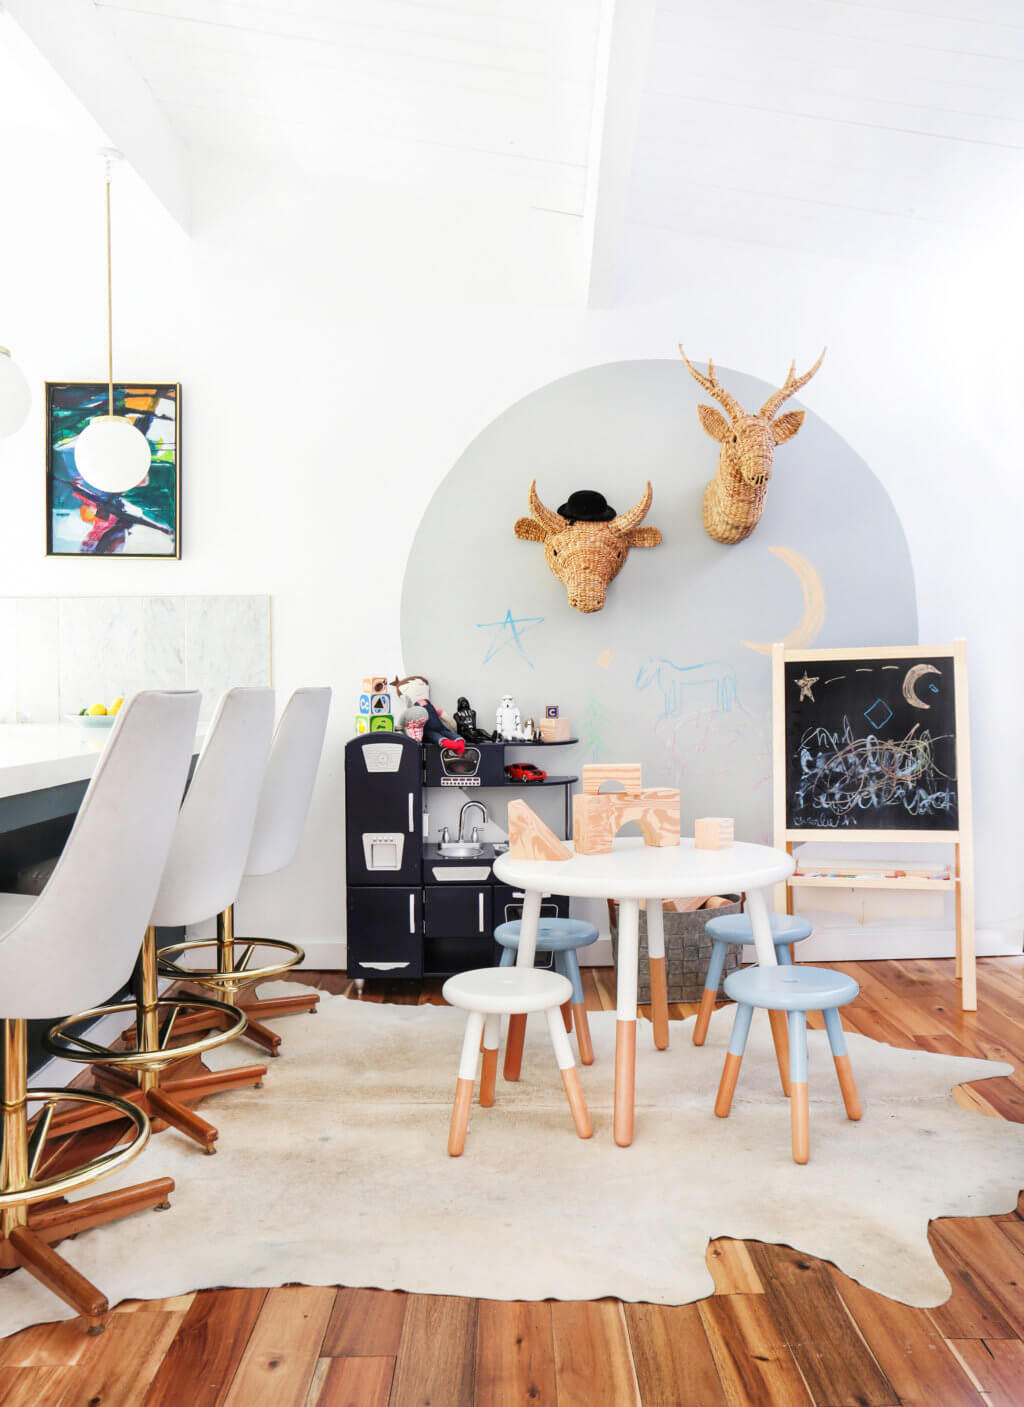 Cowhide rug under kids table, durable and easy to clean